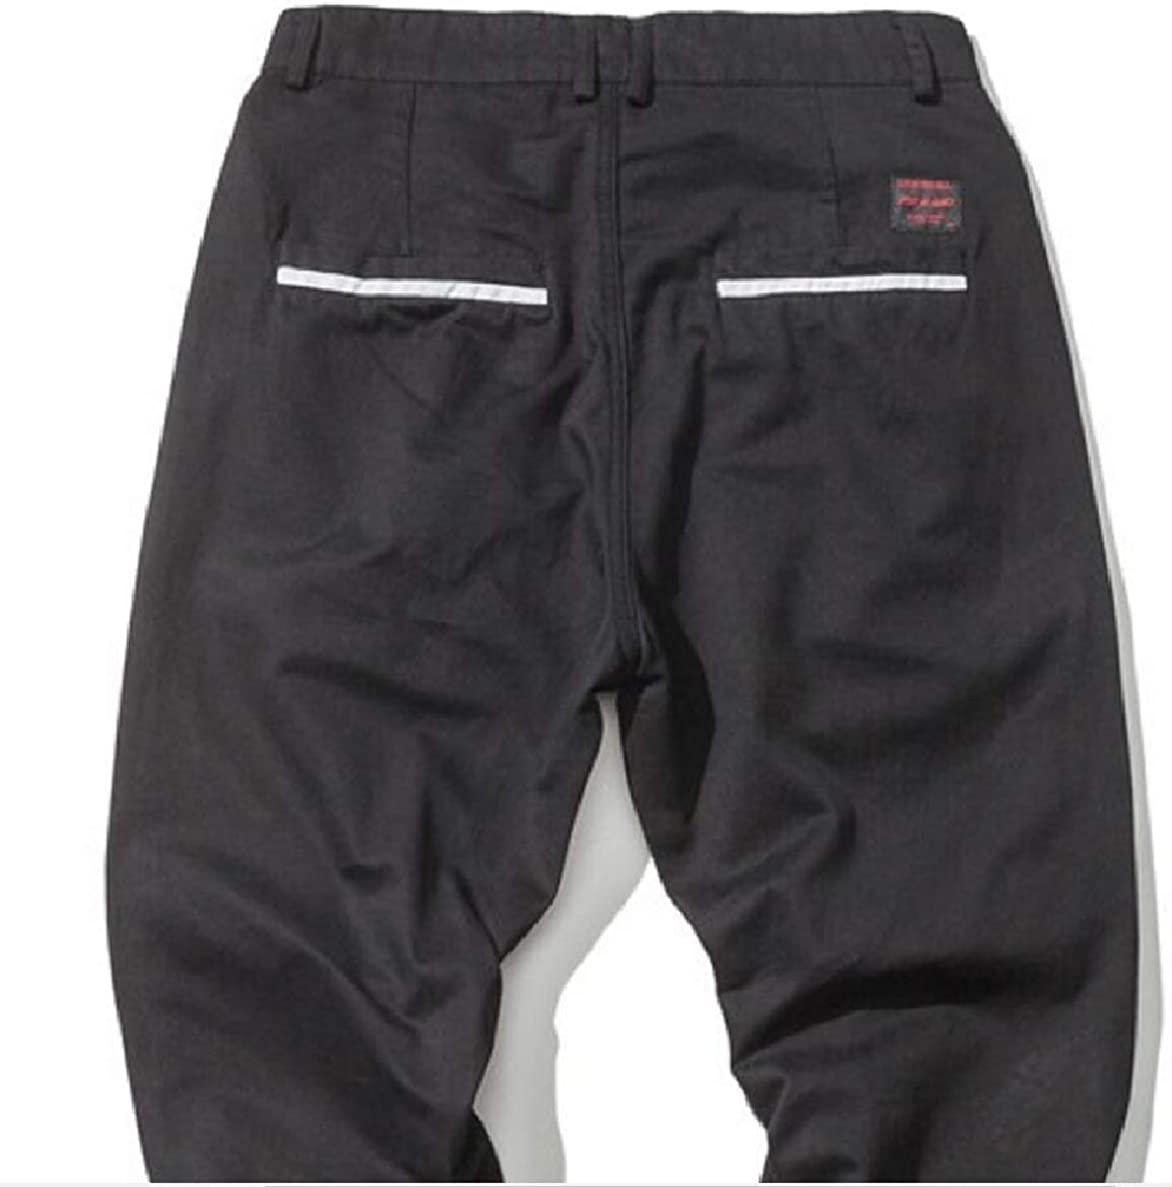 ONTBYB Mens Casual Loose Jogger Sport Harem Baggy Pants Trousers with Pockets